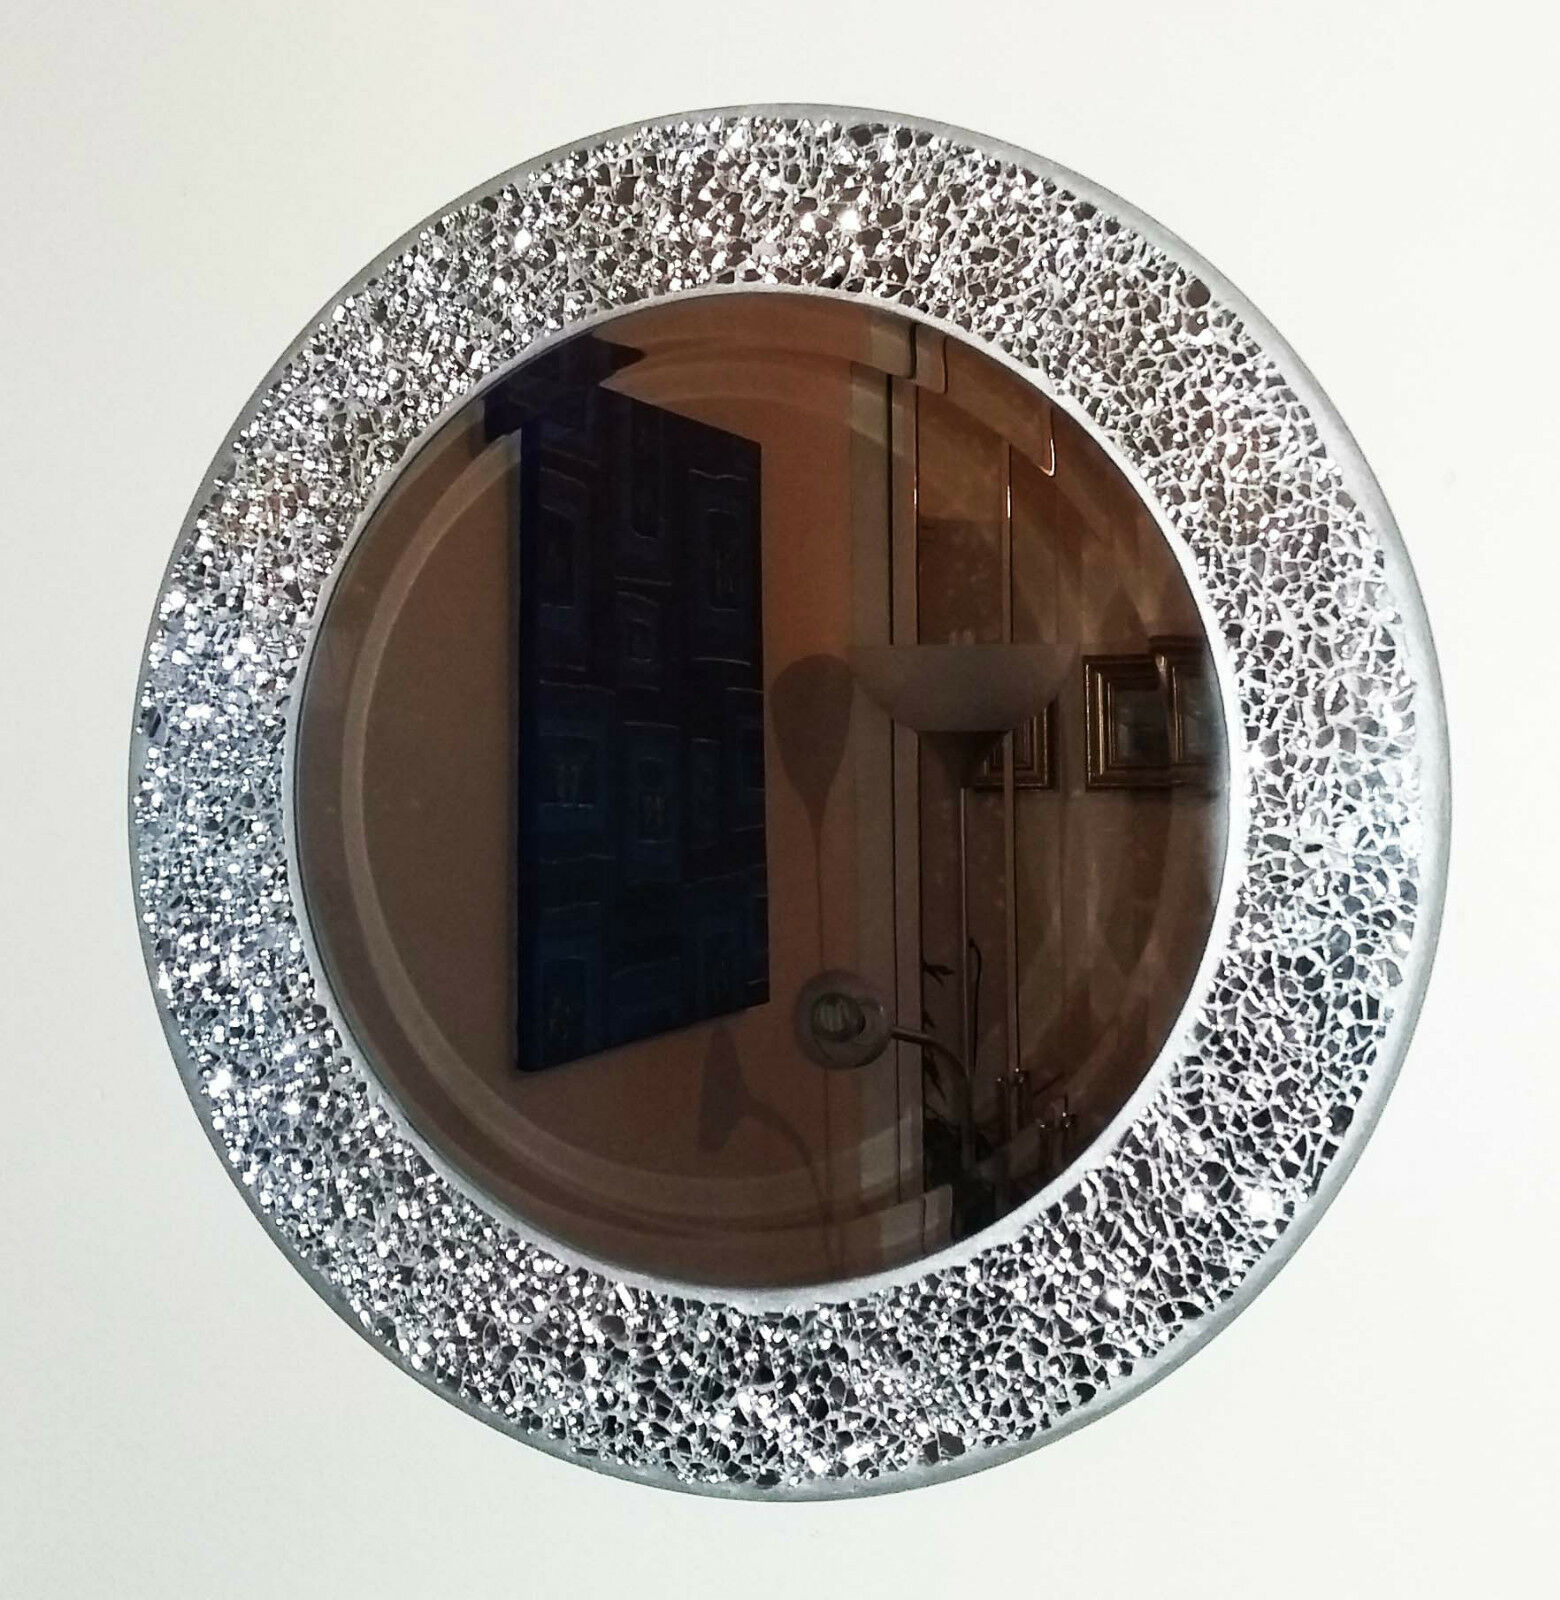 Round silver cracked mosaic wall mirror 40cm hand made new for Round silver wall mirror